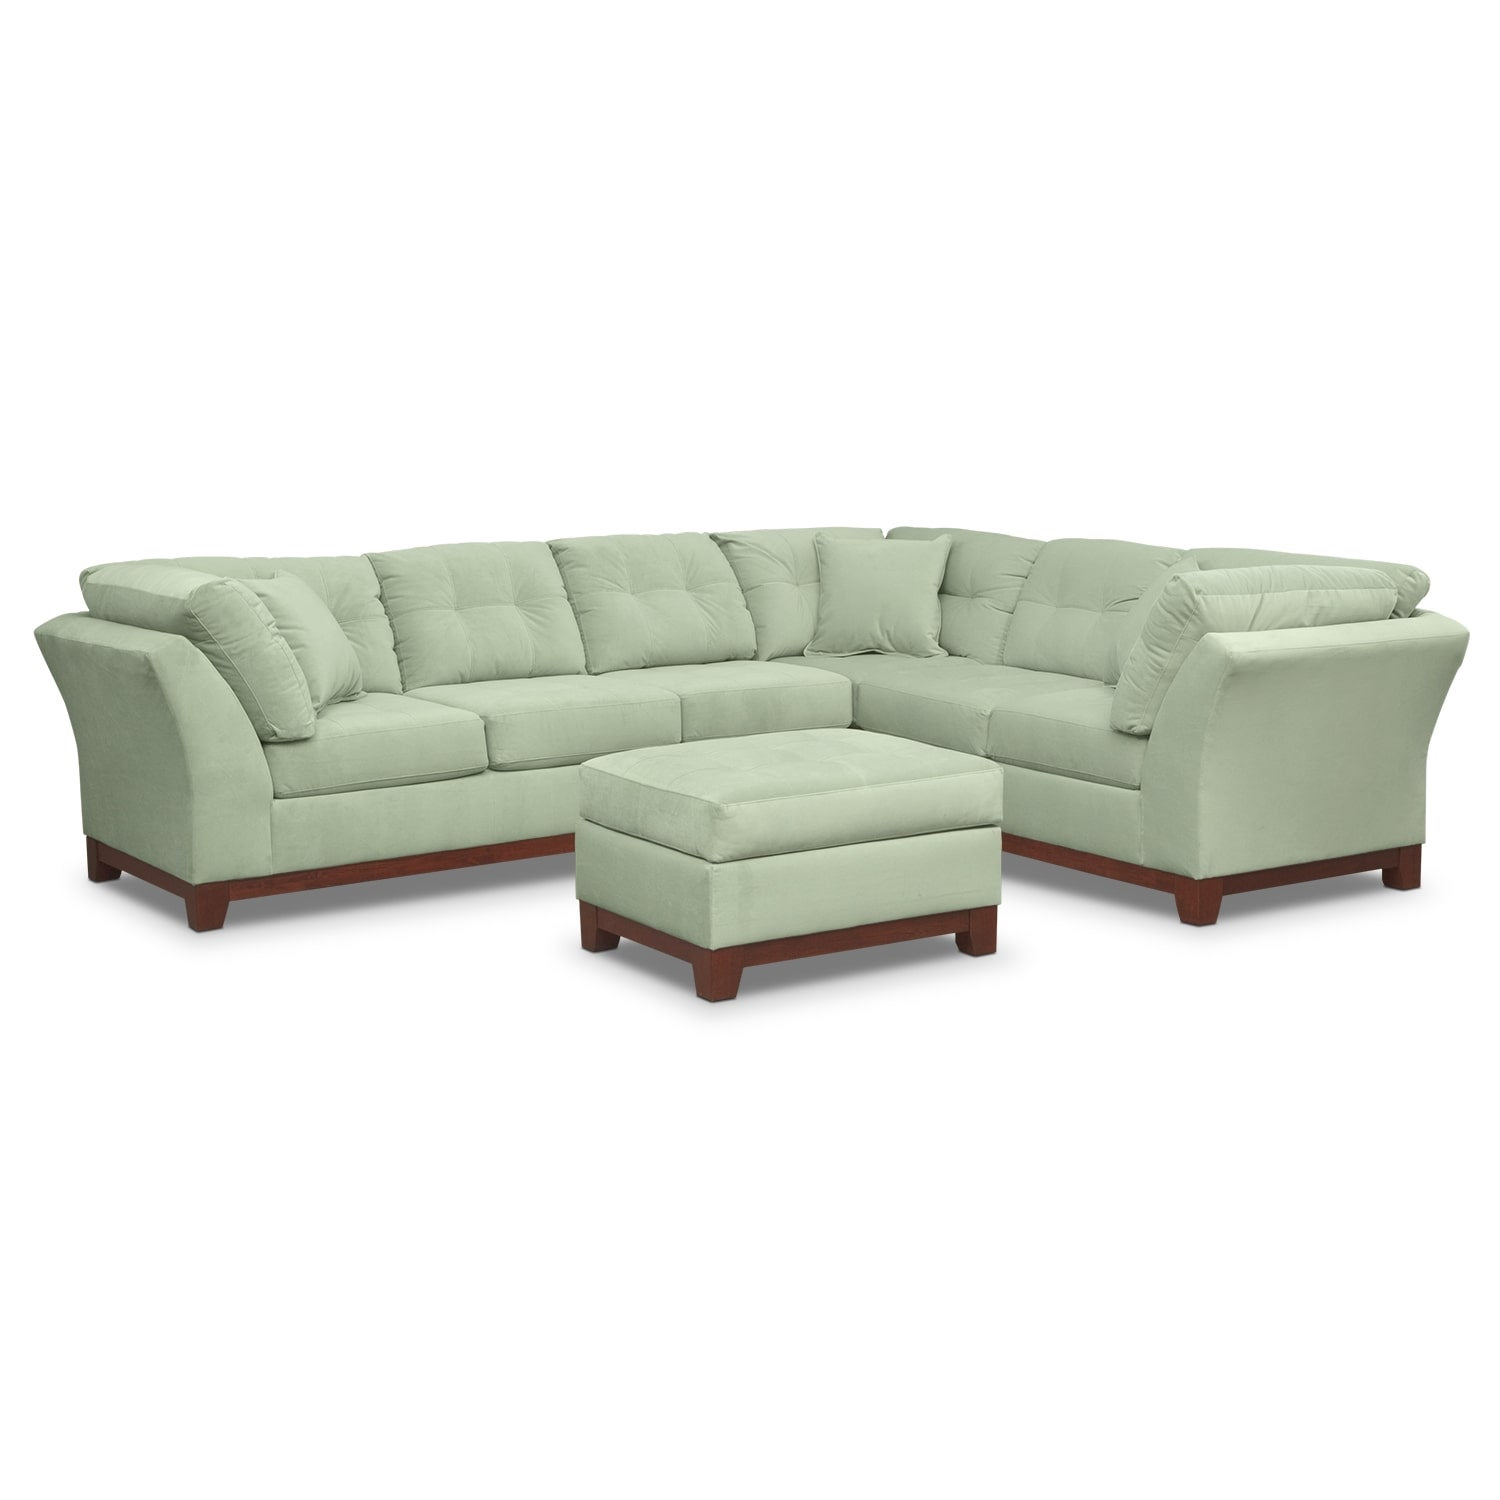 Living Room Furniture - Solace Spa II 2 Pc. Sectional (Reverse) and Ottoman